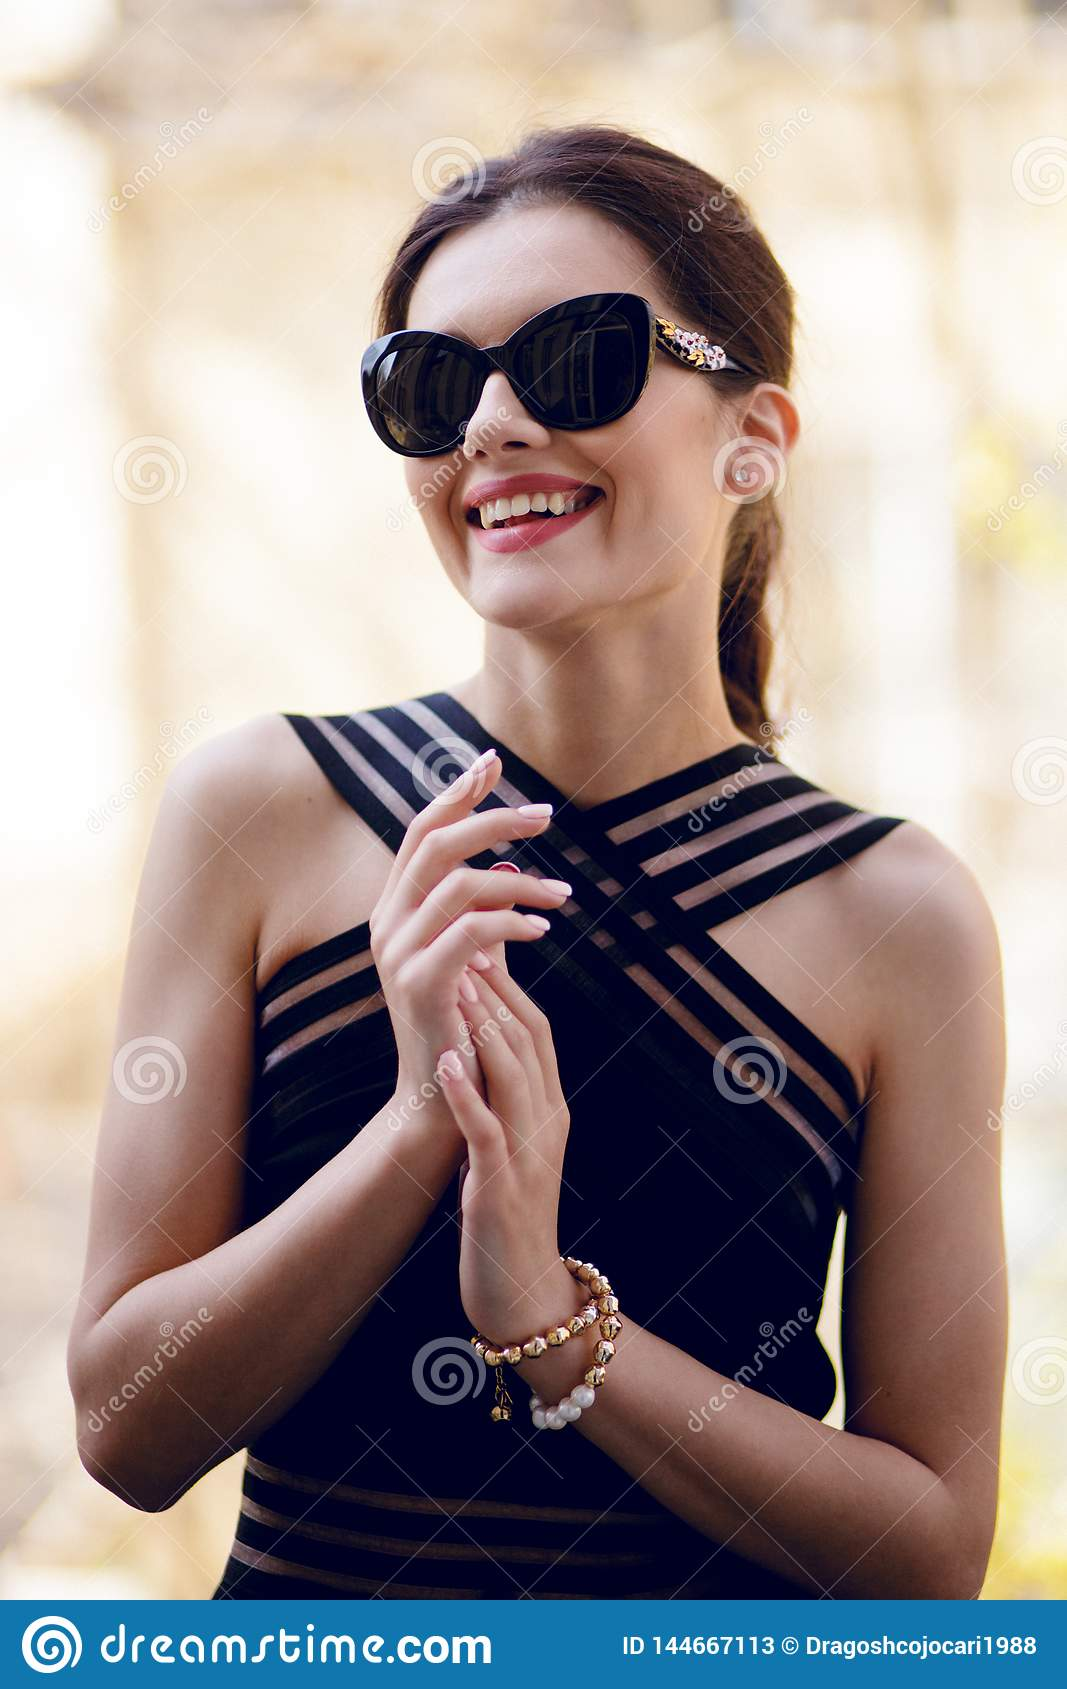 Fashionable woman with sublime from, wearing in a elegant black dress and sunglass, in daytime posing on balcony.